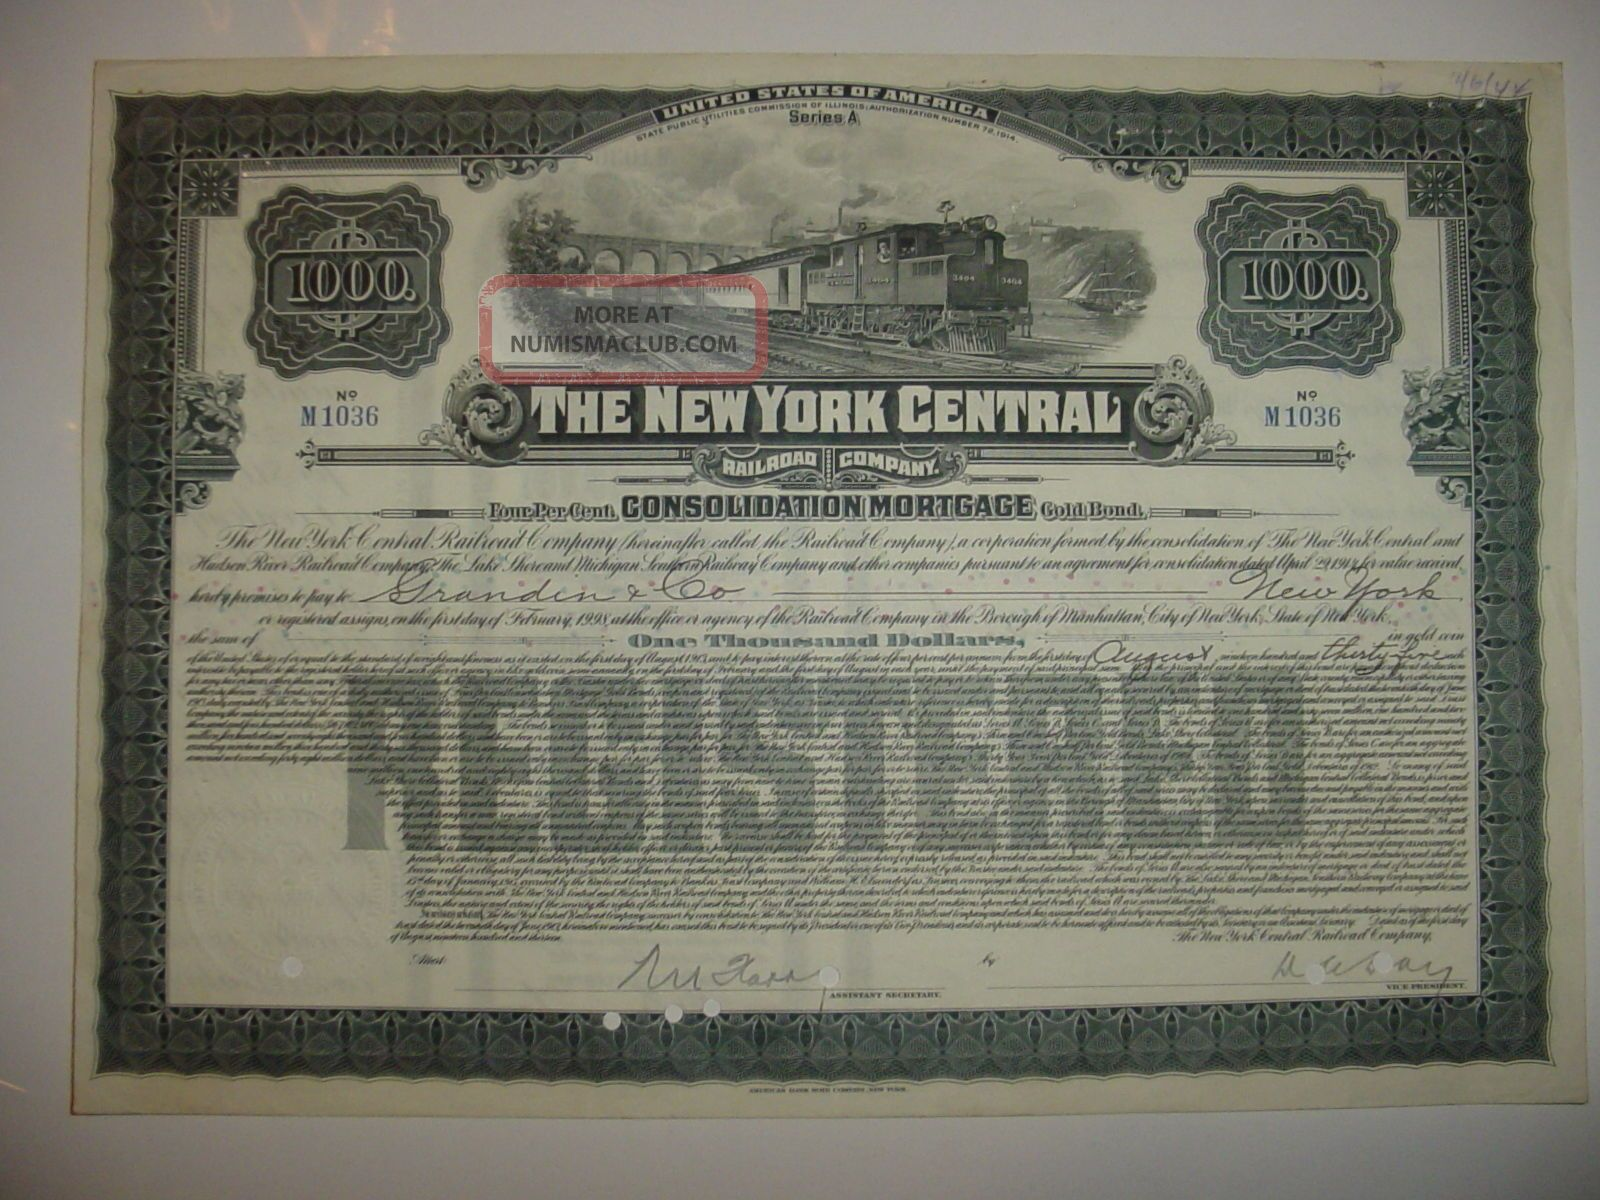 $1,  000 York Central Railroad Company Bond Stock Certificate Ny A Transportation photo